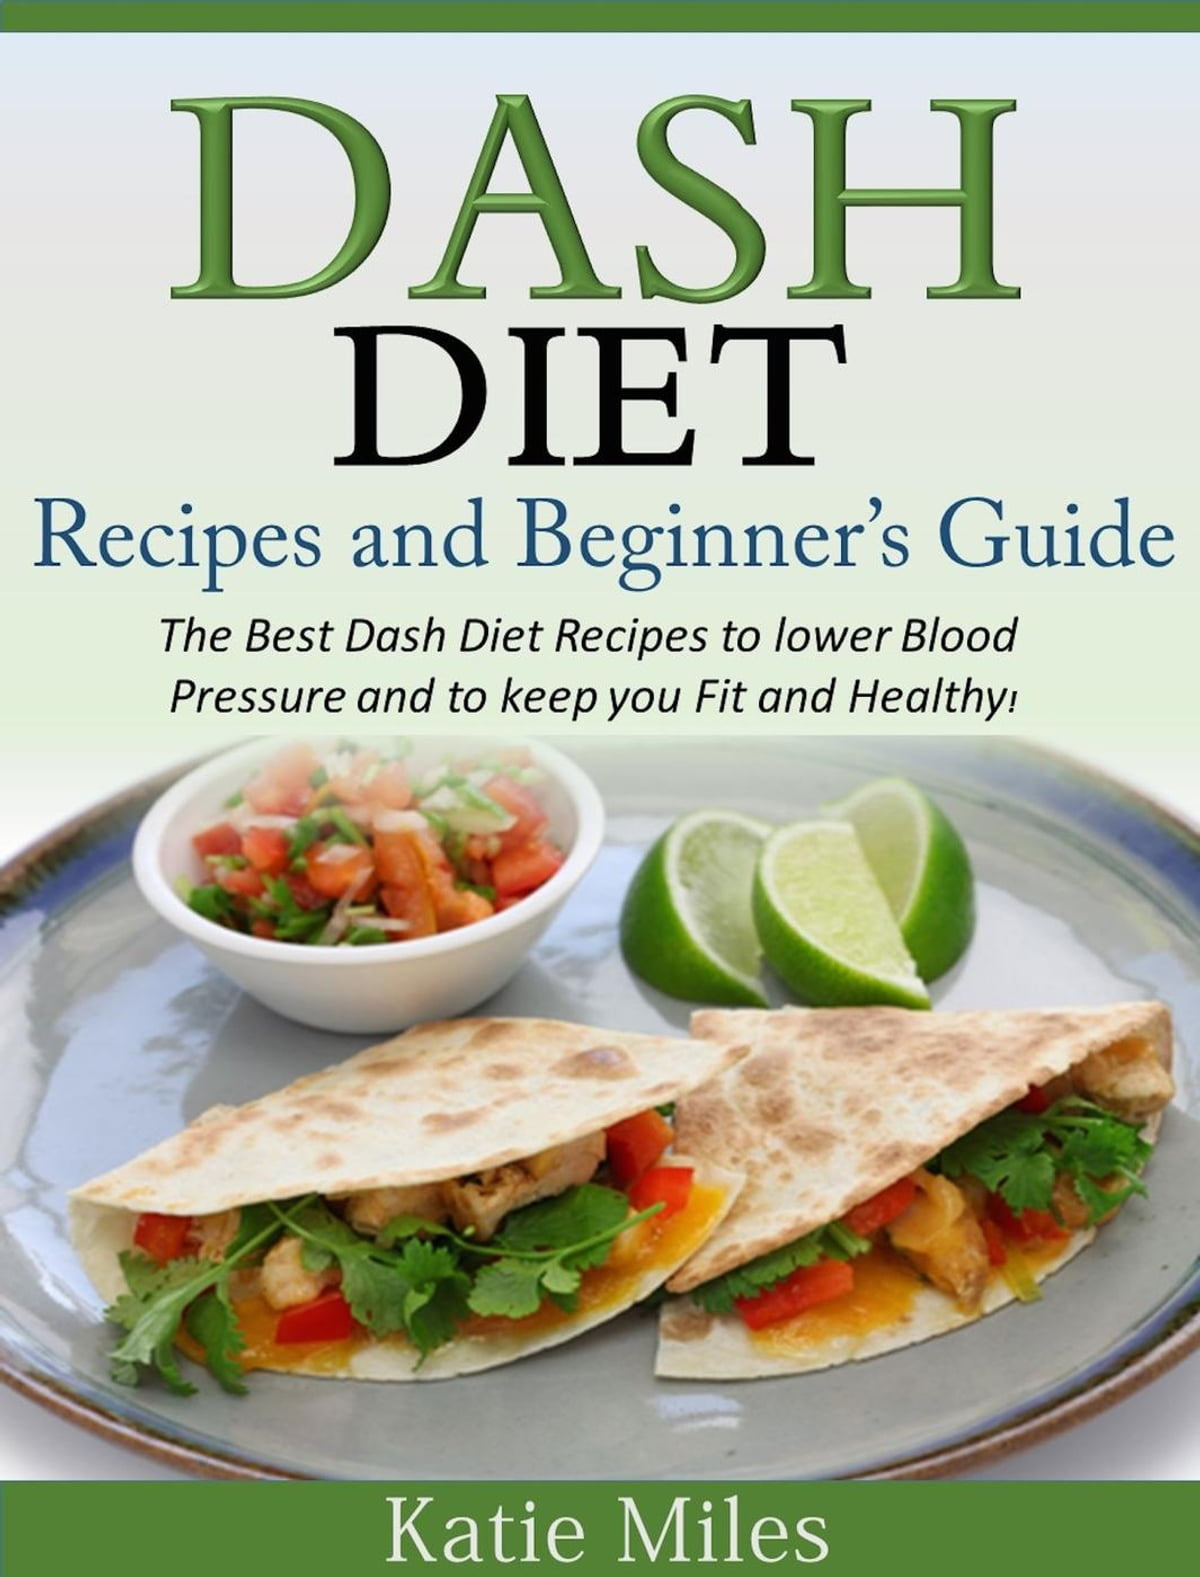 Dash diet recipes and beginners guide the best dash diet recipes dash diet recipes and beginners guide the best dash diet recipes to lower blood pressure and to keep you fit and healthy forumfinder Choice Image